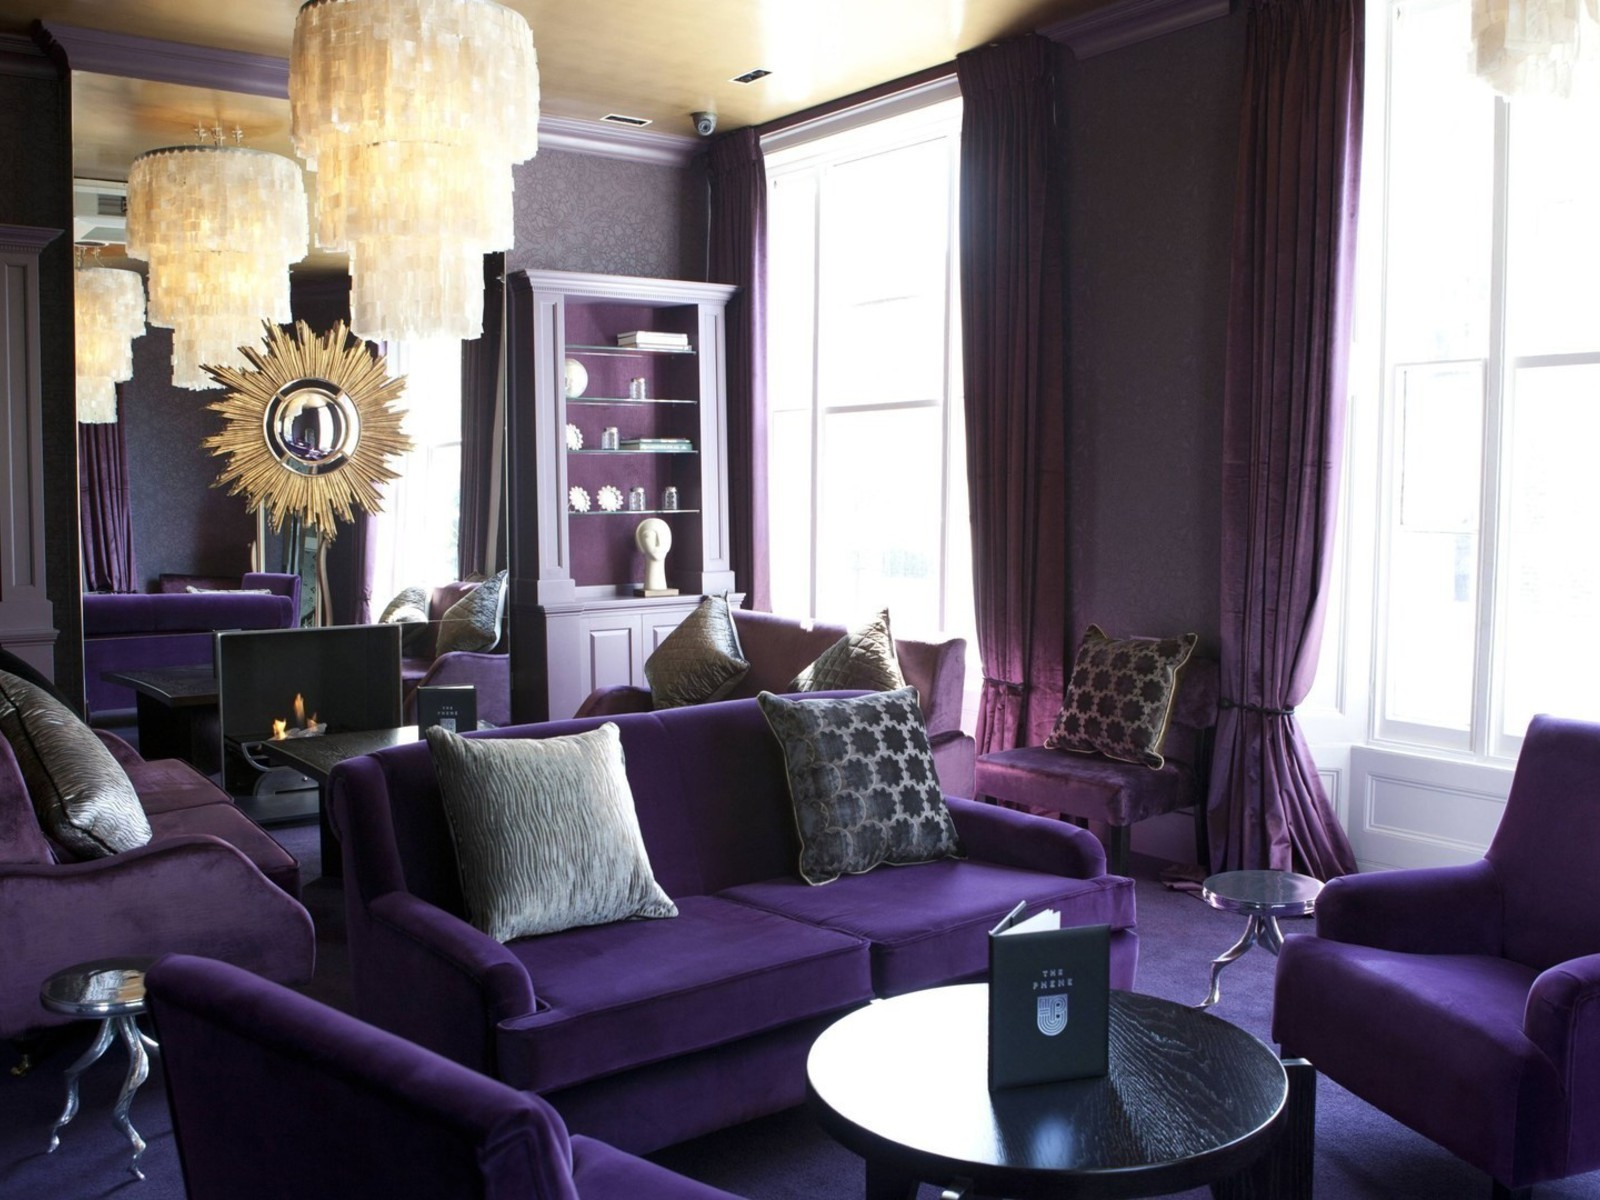 Purple Decorations For Living Room Purple Wallpaper Ideas For Living Room Yes Yes Go